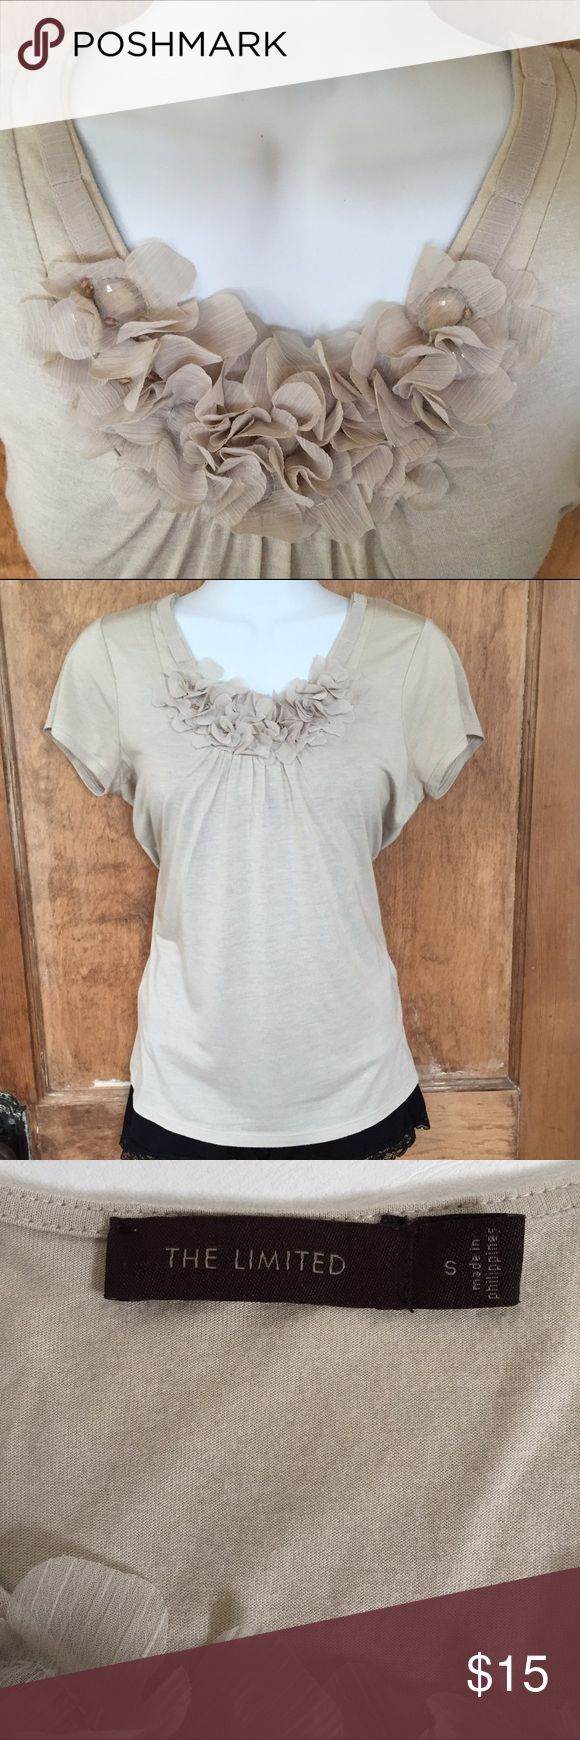 Lovely Layering Tee Simple beige tee with gorgeous ribbon detail at neck and floral/beaded detail at bottom of neckline. So pretty, wear alone or under a jacket or cardi. Super soft fabric. EUC, like new.  100% modal, care instructions in pic 4.  No trades please ❤️💕❣ The Limited Tops Tees - Short Sleeve